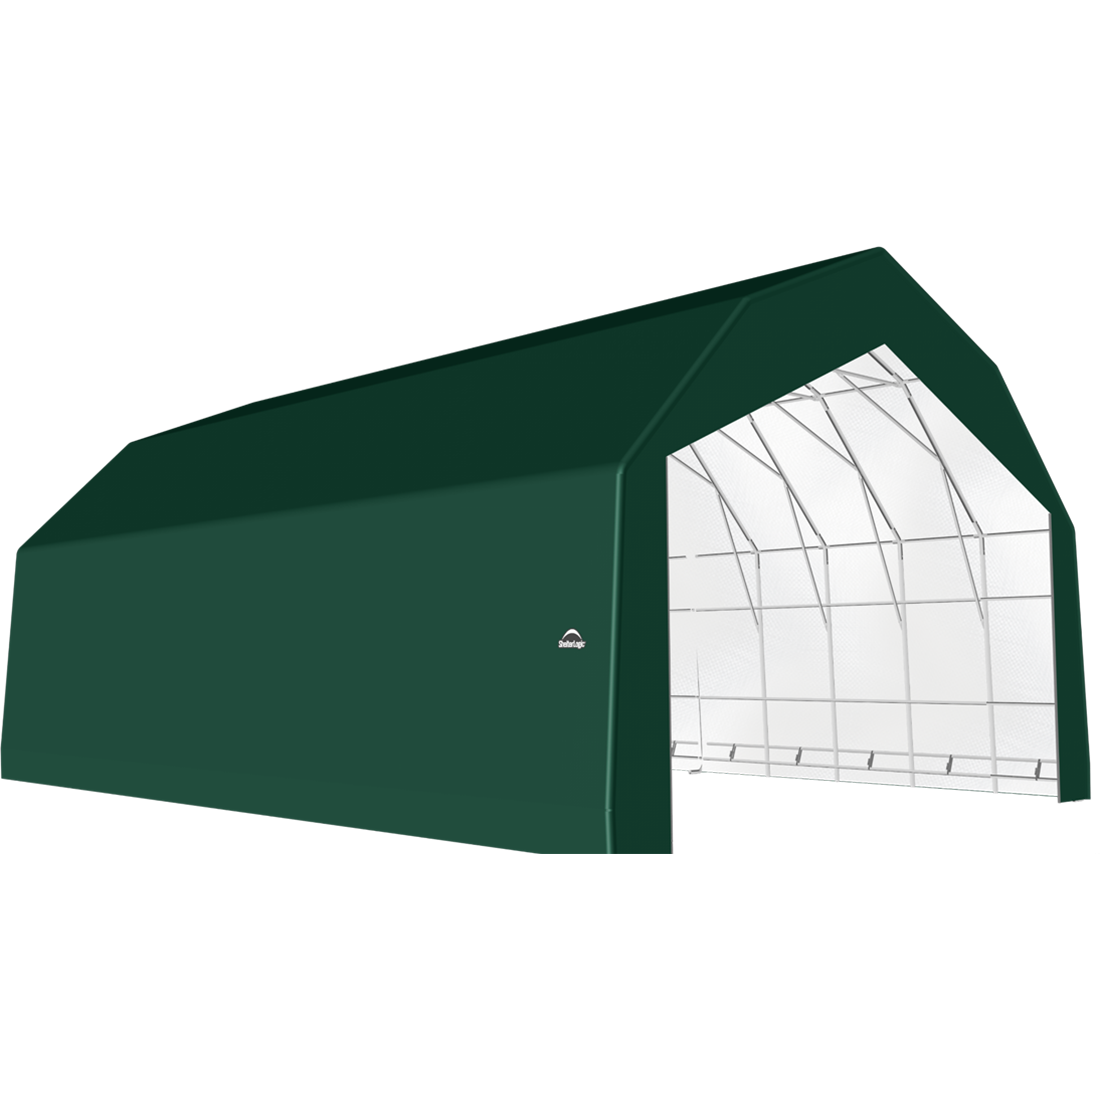 ShelterTech SP Series Barn Shelter, 30 ft. x 40 ft. x 21 ft. Heavy Duty PVC 14.5 oz. Green